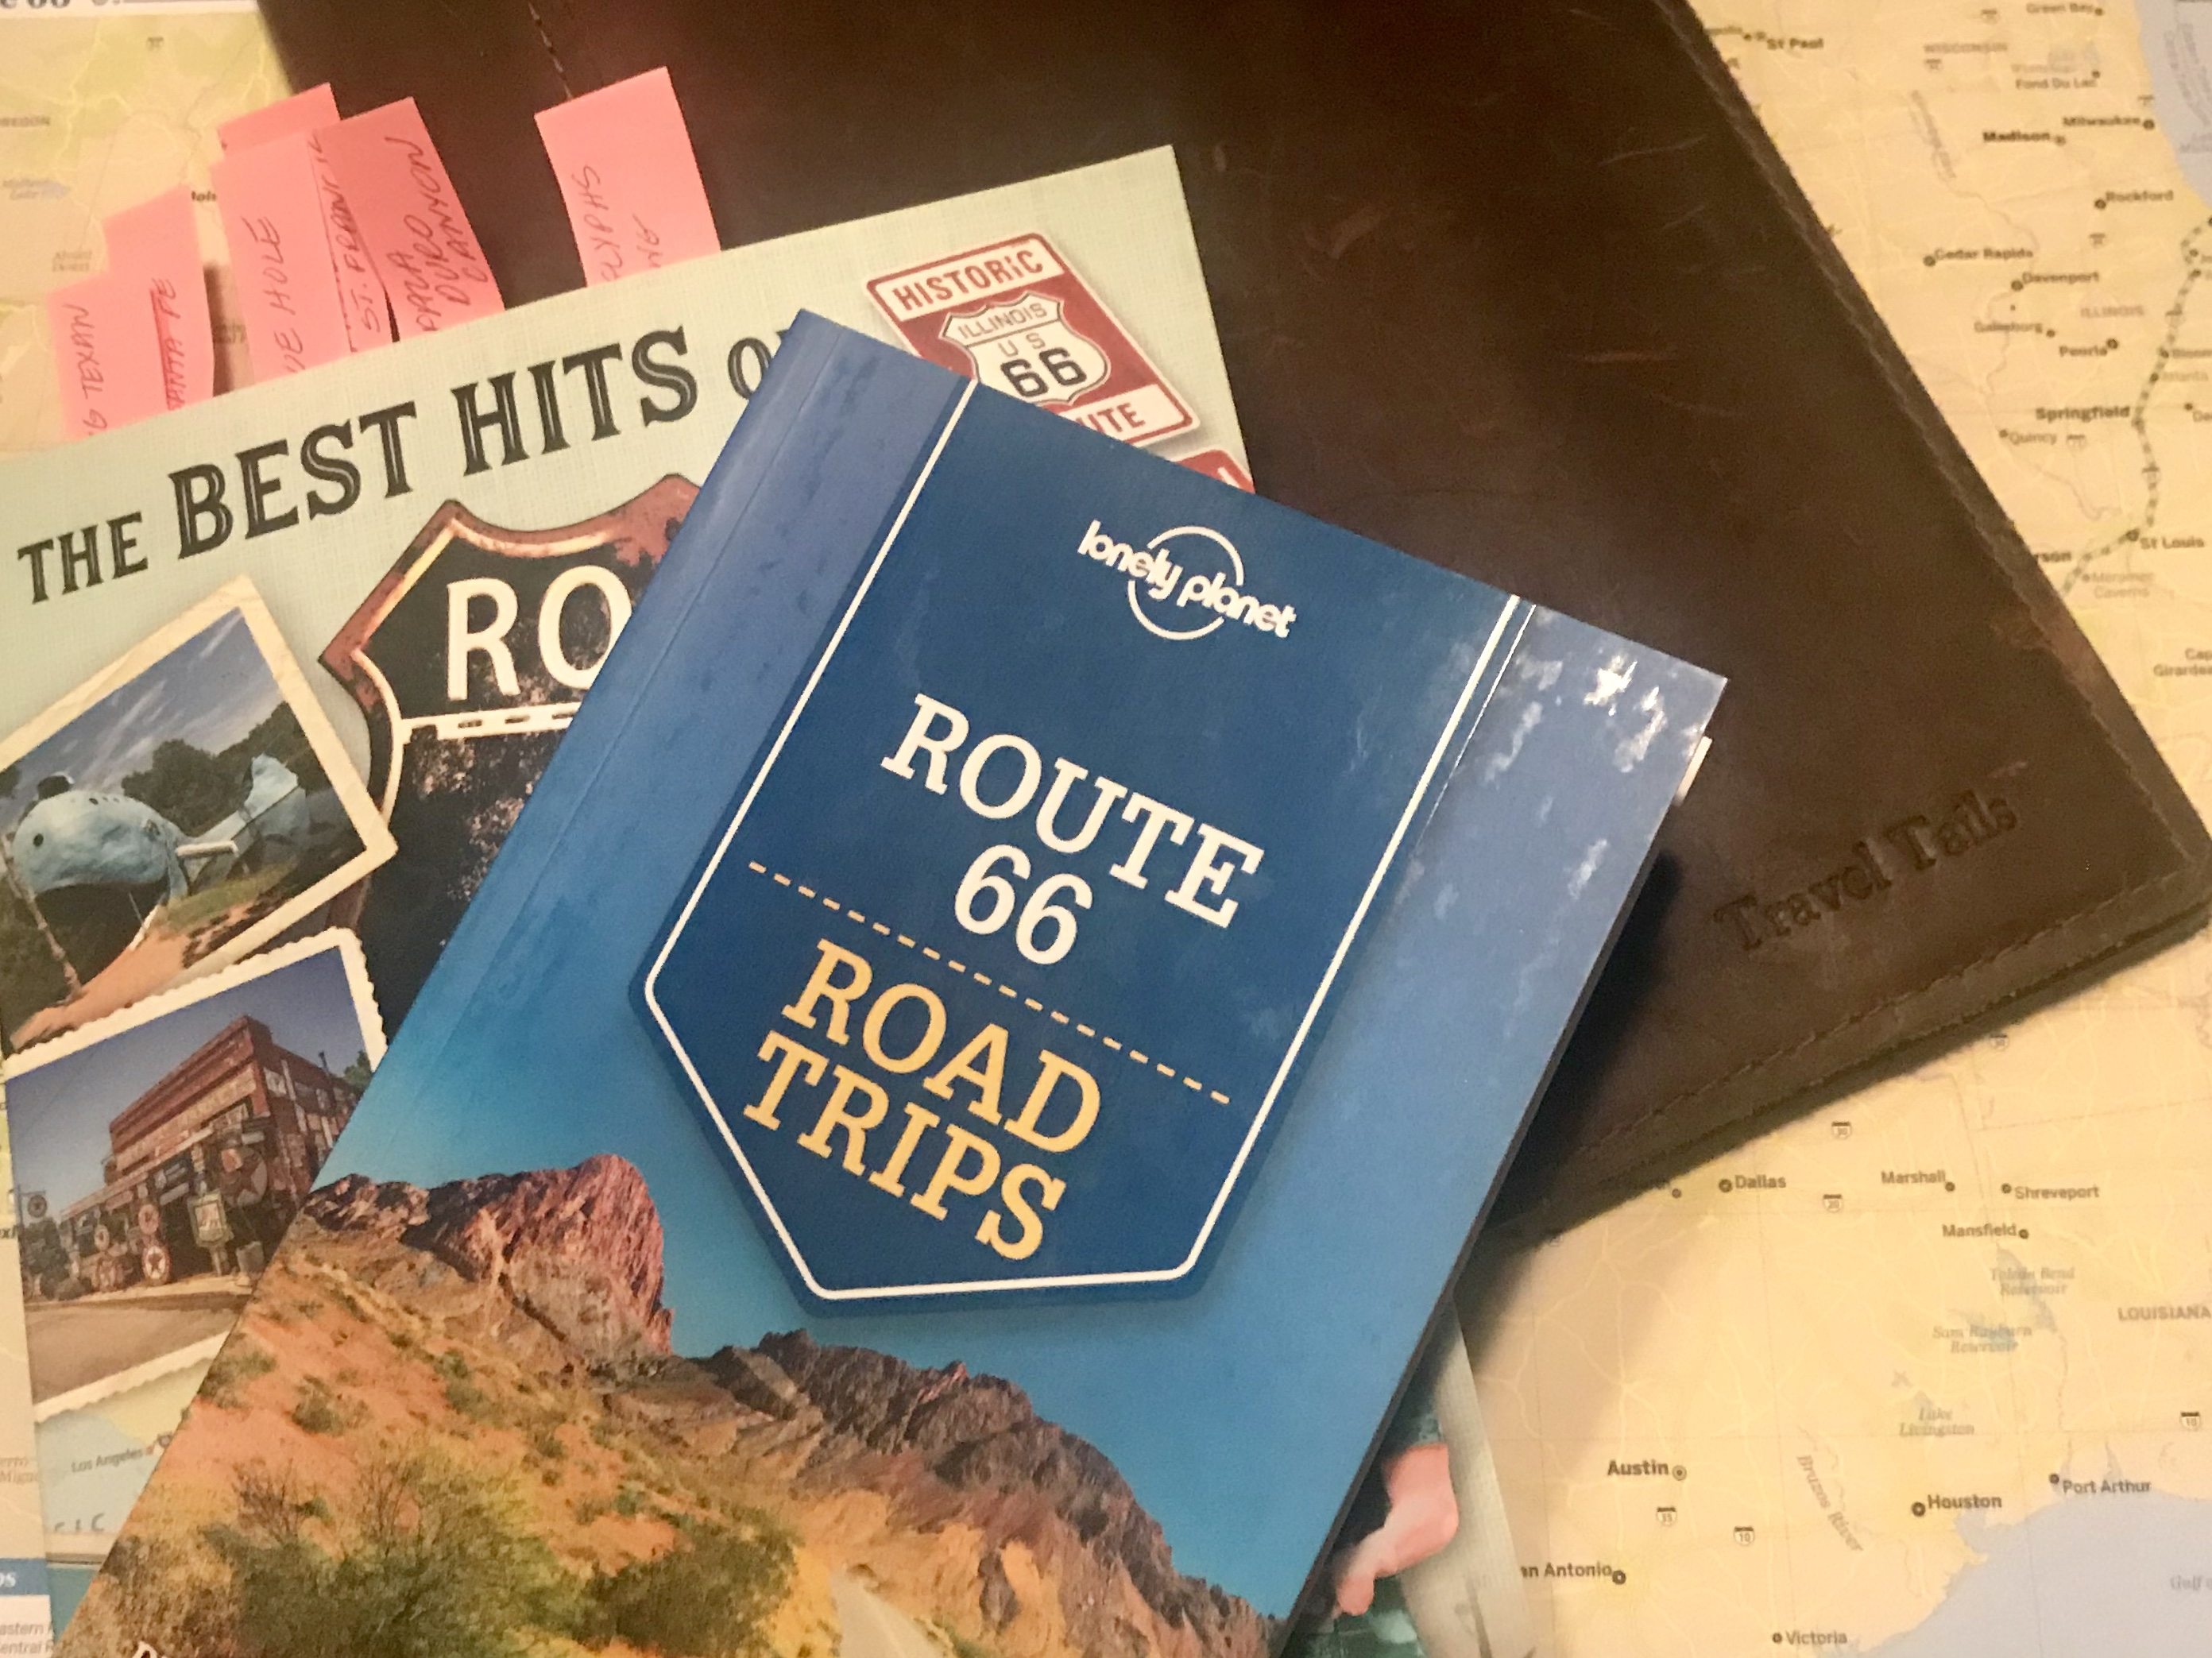 Maps of Route 66